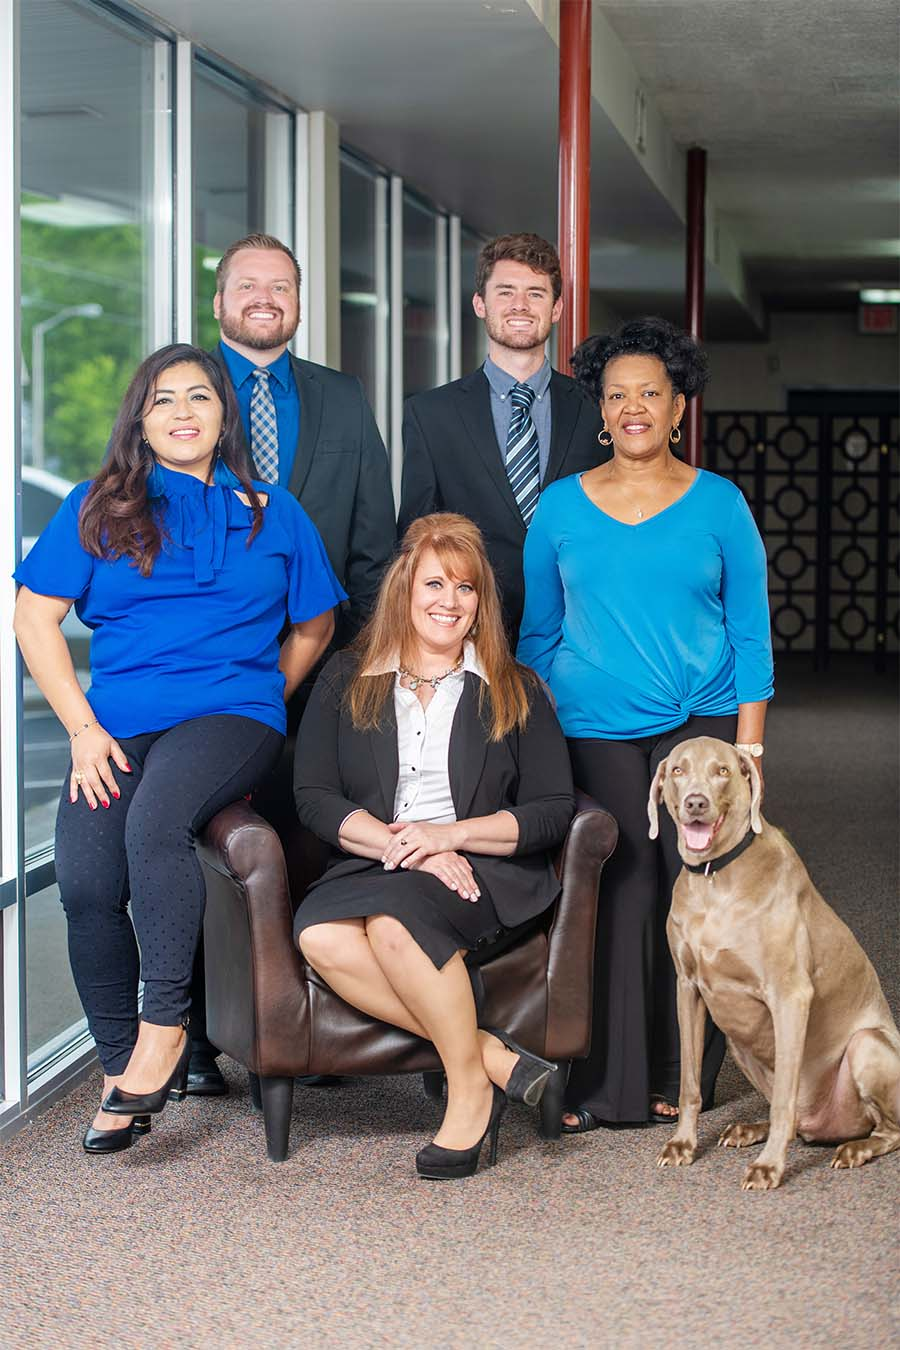 About Our Agency - Portrait of Williams Agency Team Inside Kentucky Office